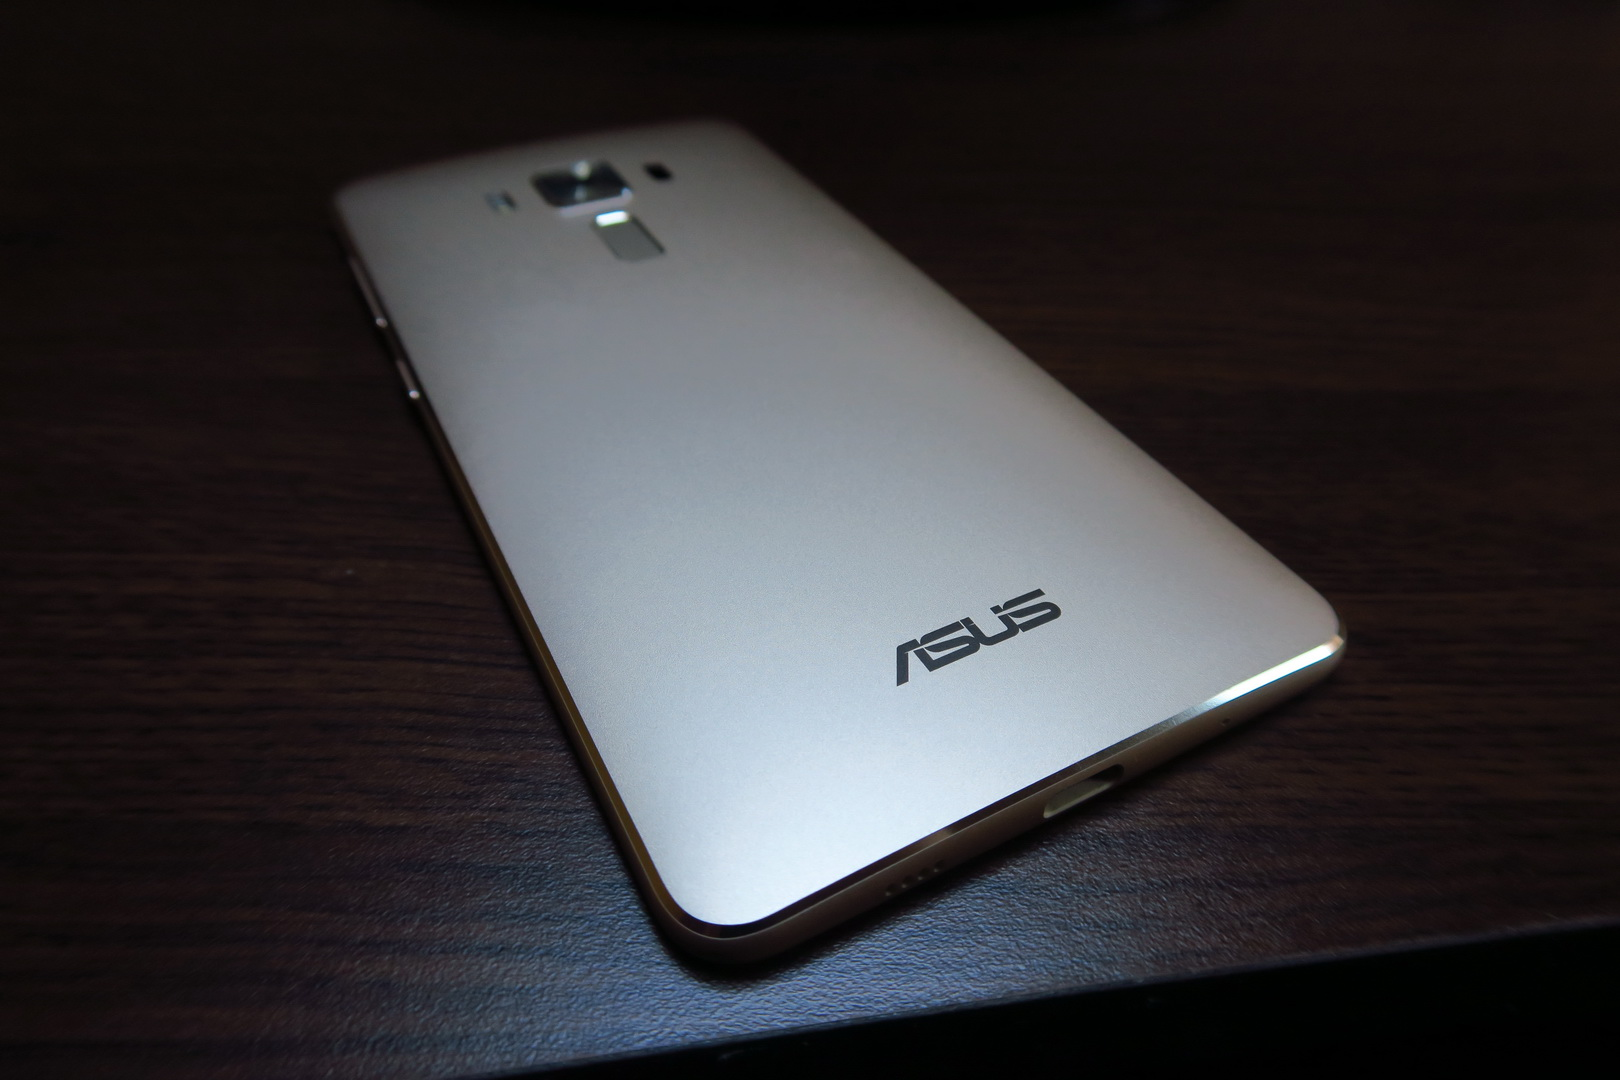 asus zenfone 3 deluxe review gamers and media lovers. Black Bedroom Furniture Sets. Home Design Ideas